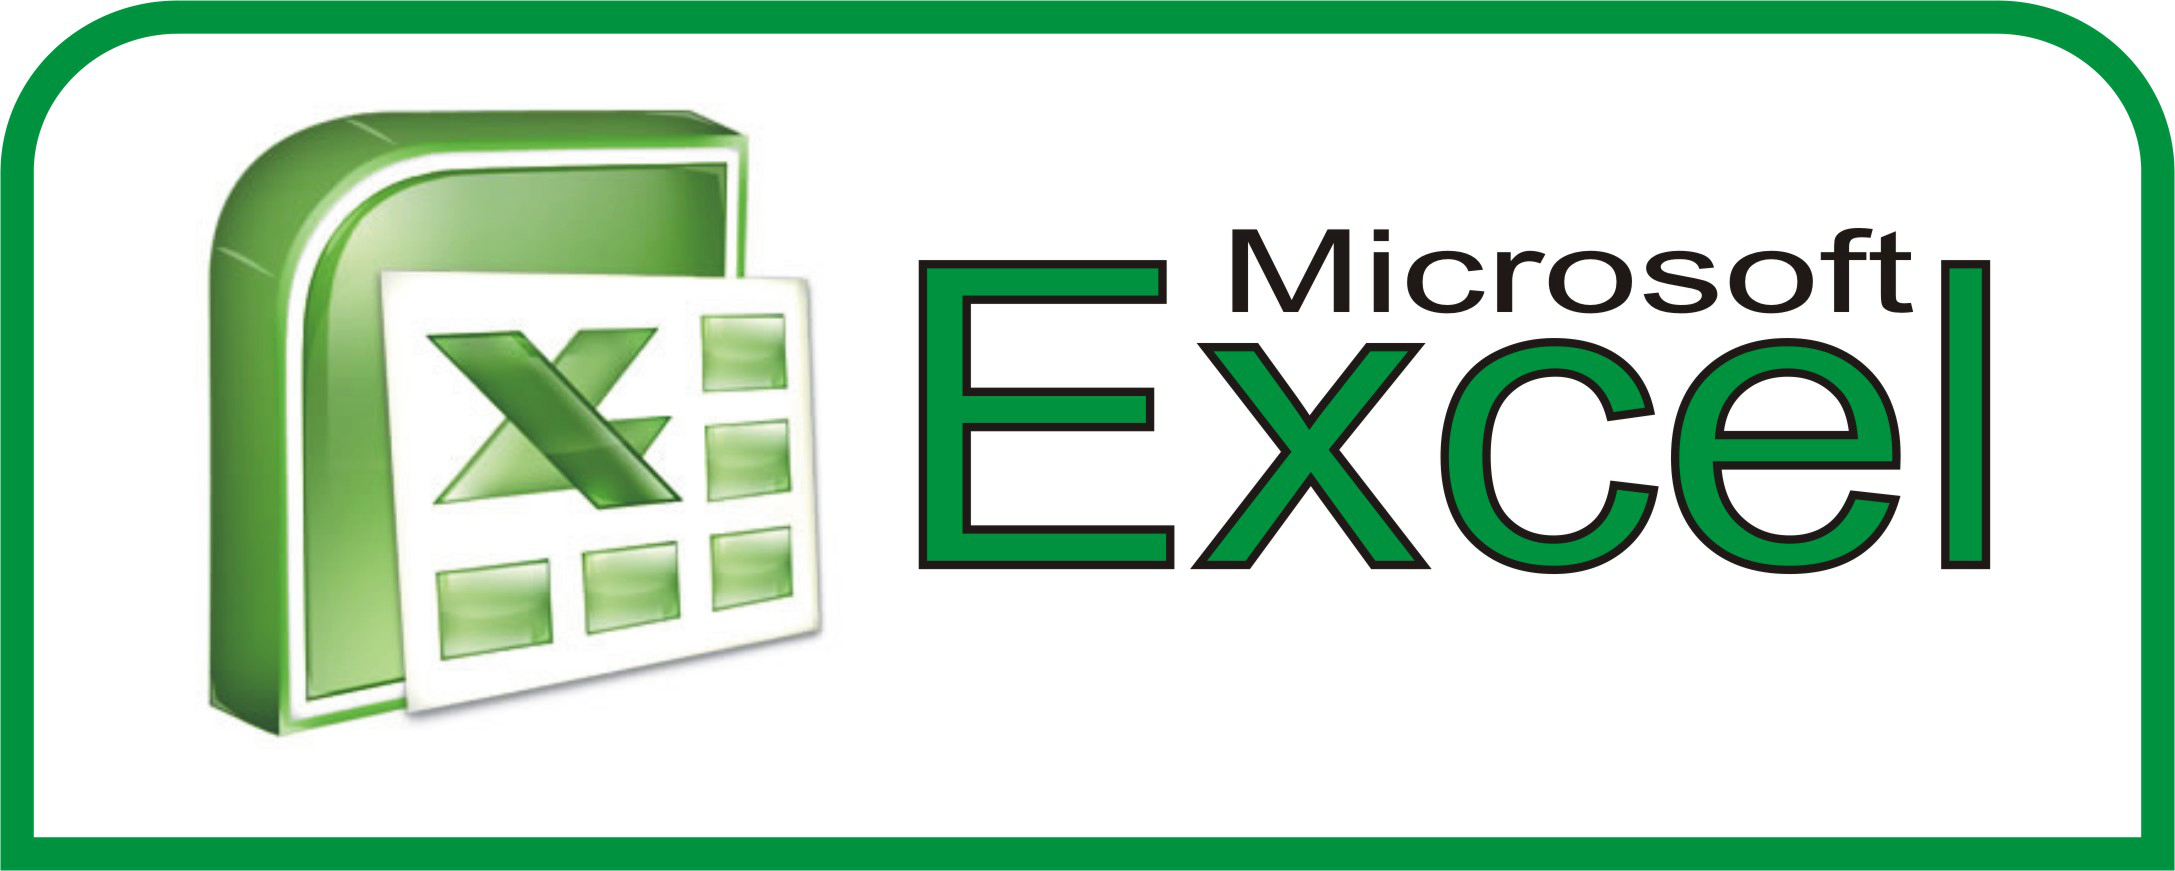 Ediblewildsus  Outstanding  Excel Shortcuts You Probably Didnt Know About  Techdissected With Gorgeous Counting Characters In Excel Besides Excel Insert Picture Into Cell Furthermore Ods Excel With Enchanting How To Average Cells In Excel Also Find Excel Function In Addition Dot Plot In Excel And Excel Retirement Calculator As Well As Excel Staffing Mn Additionally How To Calculate Future Value In Excel From Techdissectedcom With Ediblewildsus  Gorgeous  Excel Shortcuts You Probably Didnt Know About  Techdissected With Enchanting Counting Characters In Excel Besides Excel Insert Picture Into Cell Furthermore Ods Excel And Outstanding How To Average Cells In Excel Also Find Excel Function In Addition Dot Plot In Excel From Techdissectedcom